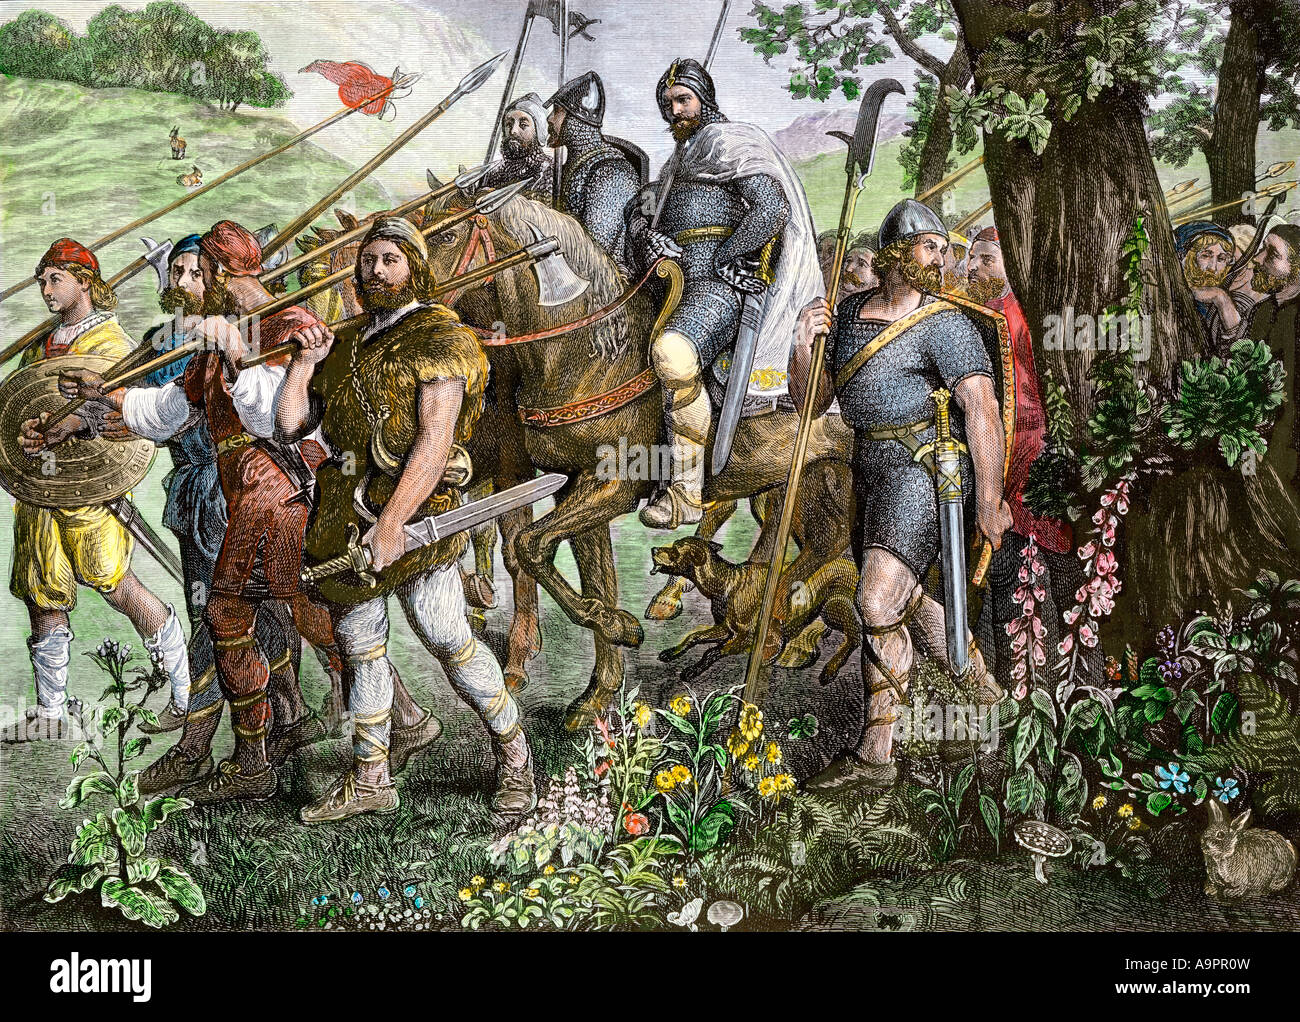 Men of Kent marching to defend England from the Norman invasion 1066. Hand-colored woodcut - Stock Image